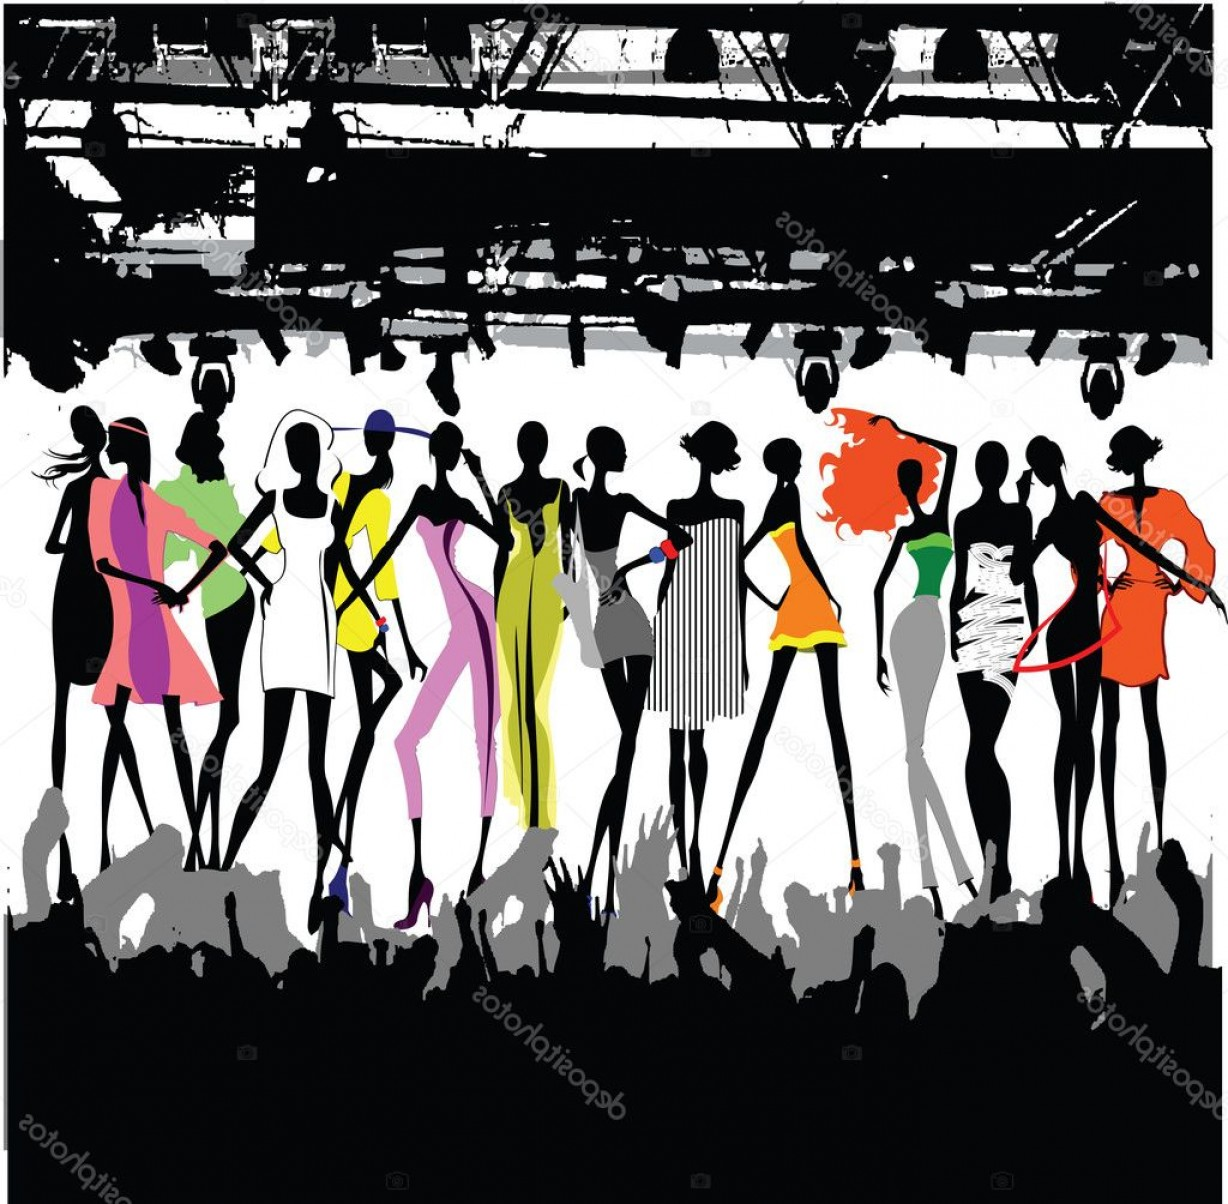 Fashon Shows Vectores: Stock Illustration Fashion Show Crowd Vector